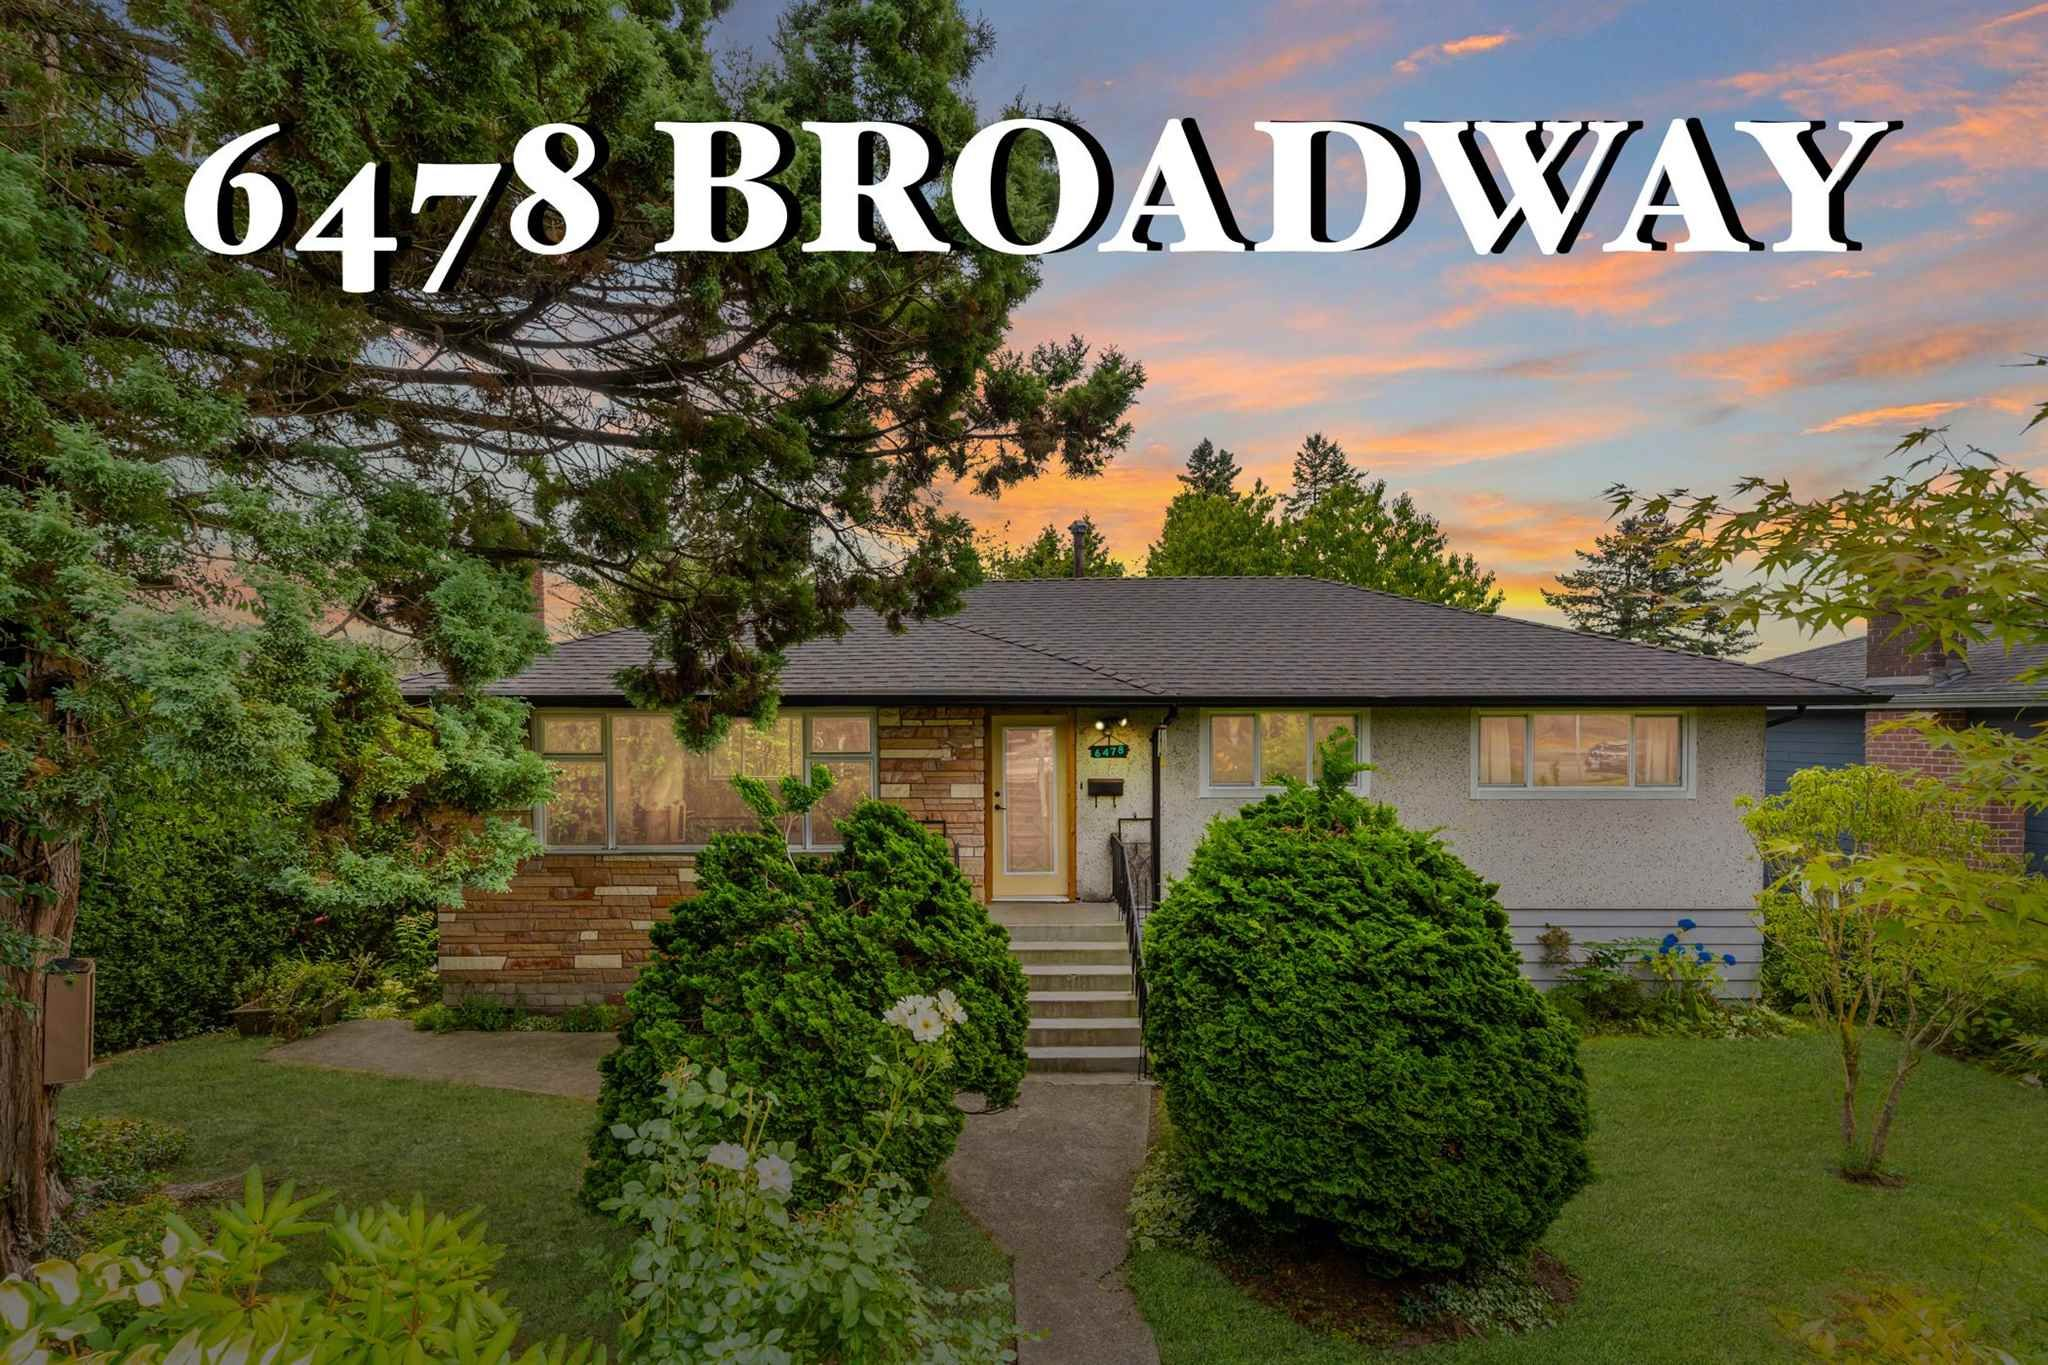 Main Photo: 6478 BROADWAY STREET in Burnaby: Parkcrest House for sale (Burnaby North)  : MLS®# R2601207